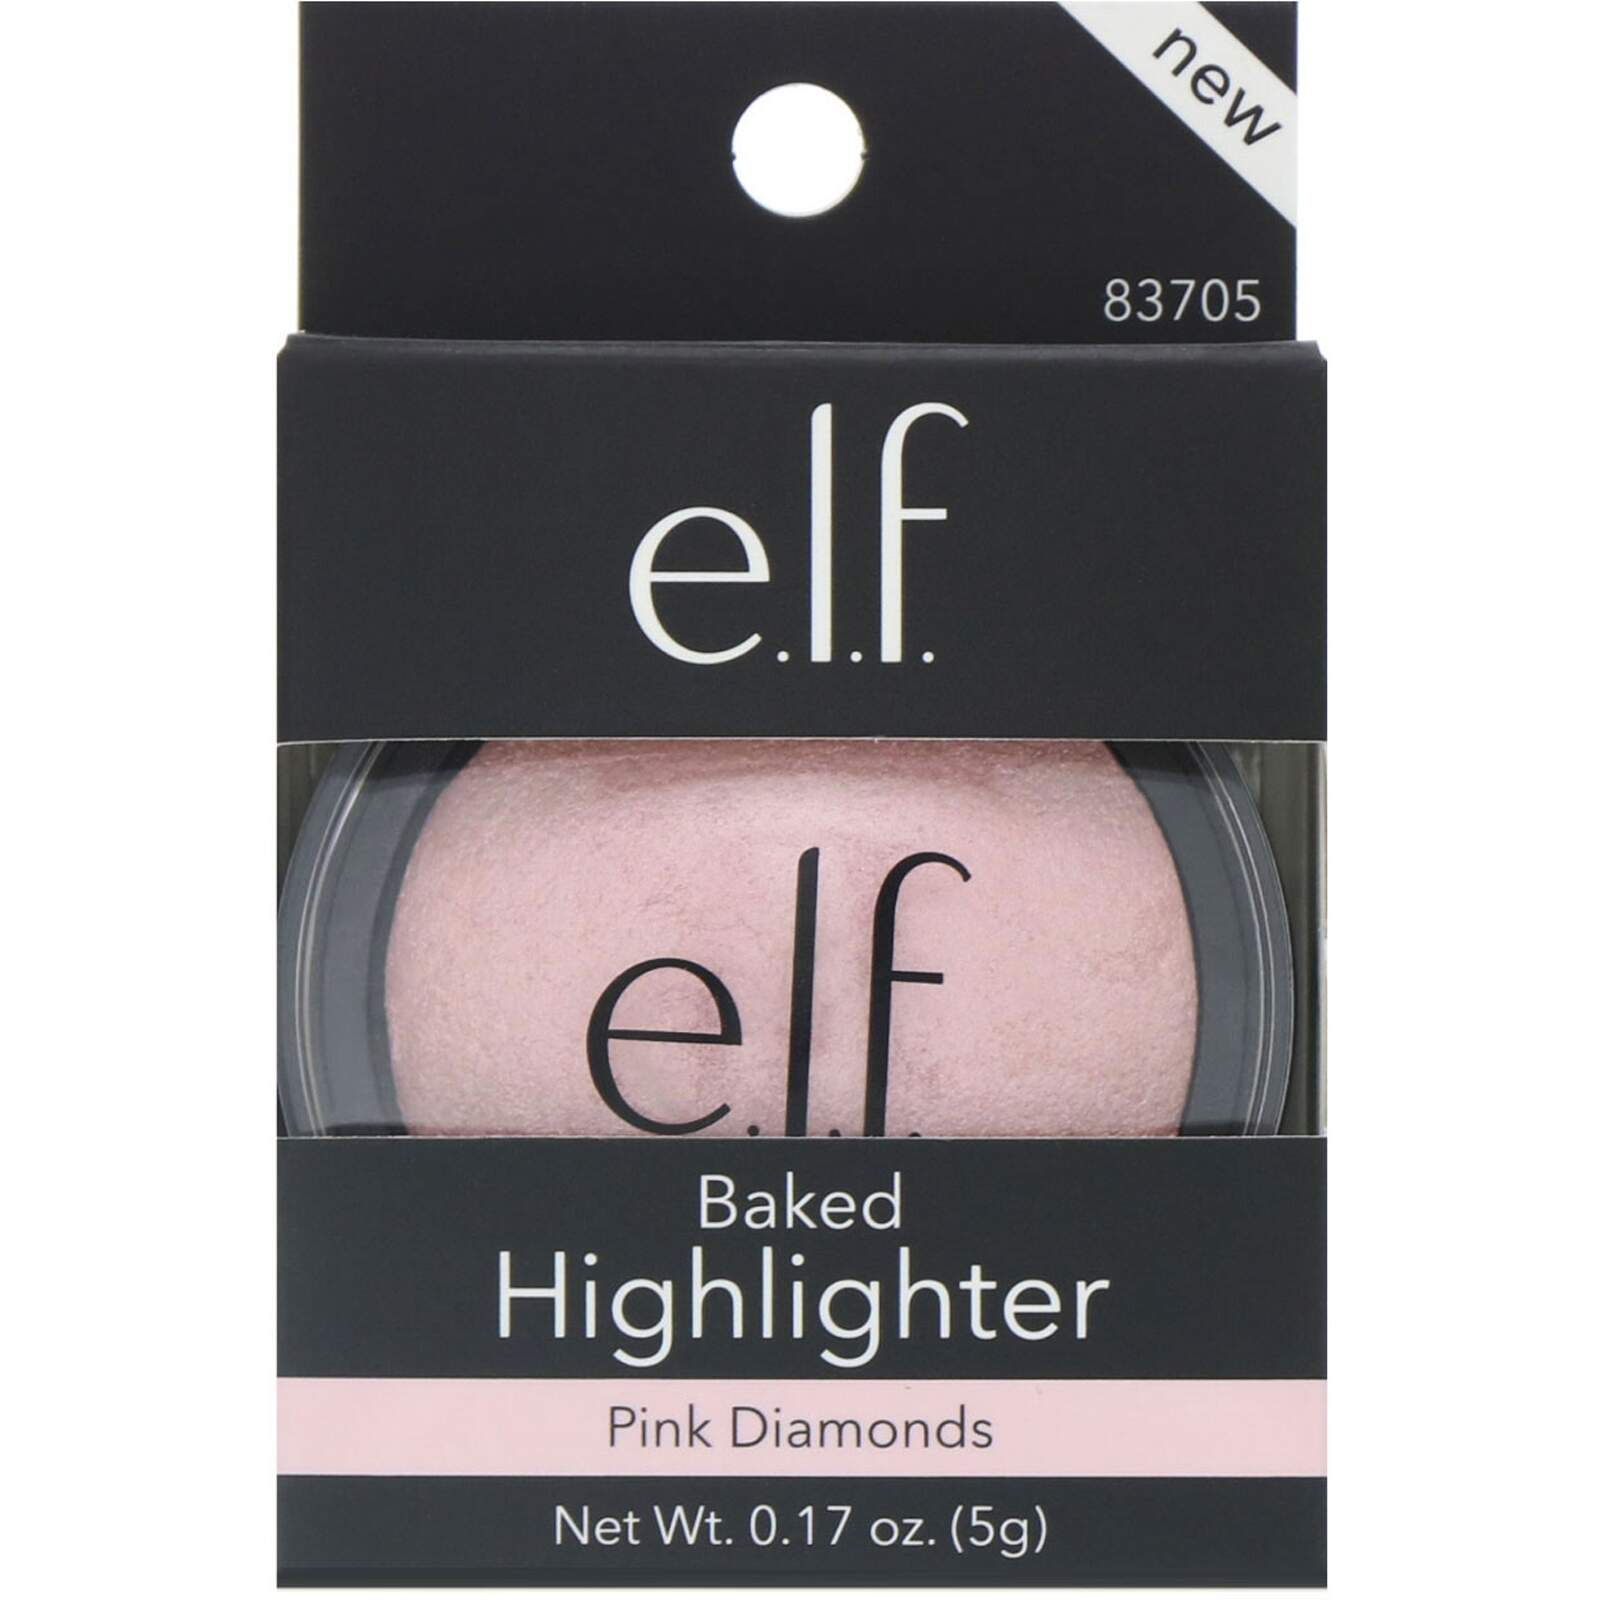 Iluminador Baked Highlighter, Pink Diamonds, 5g ELF COSMETICS